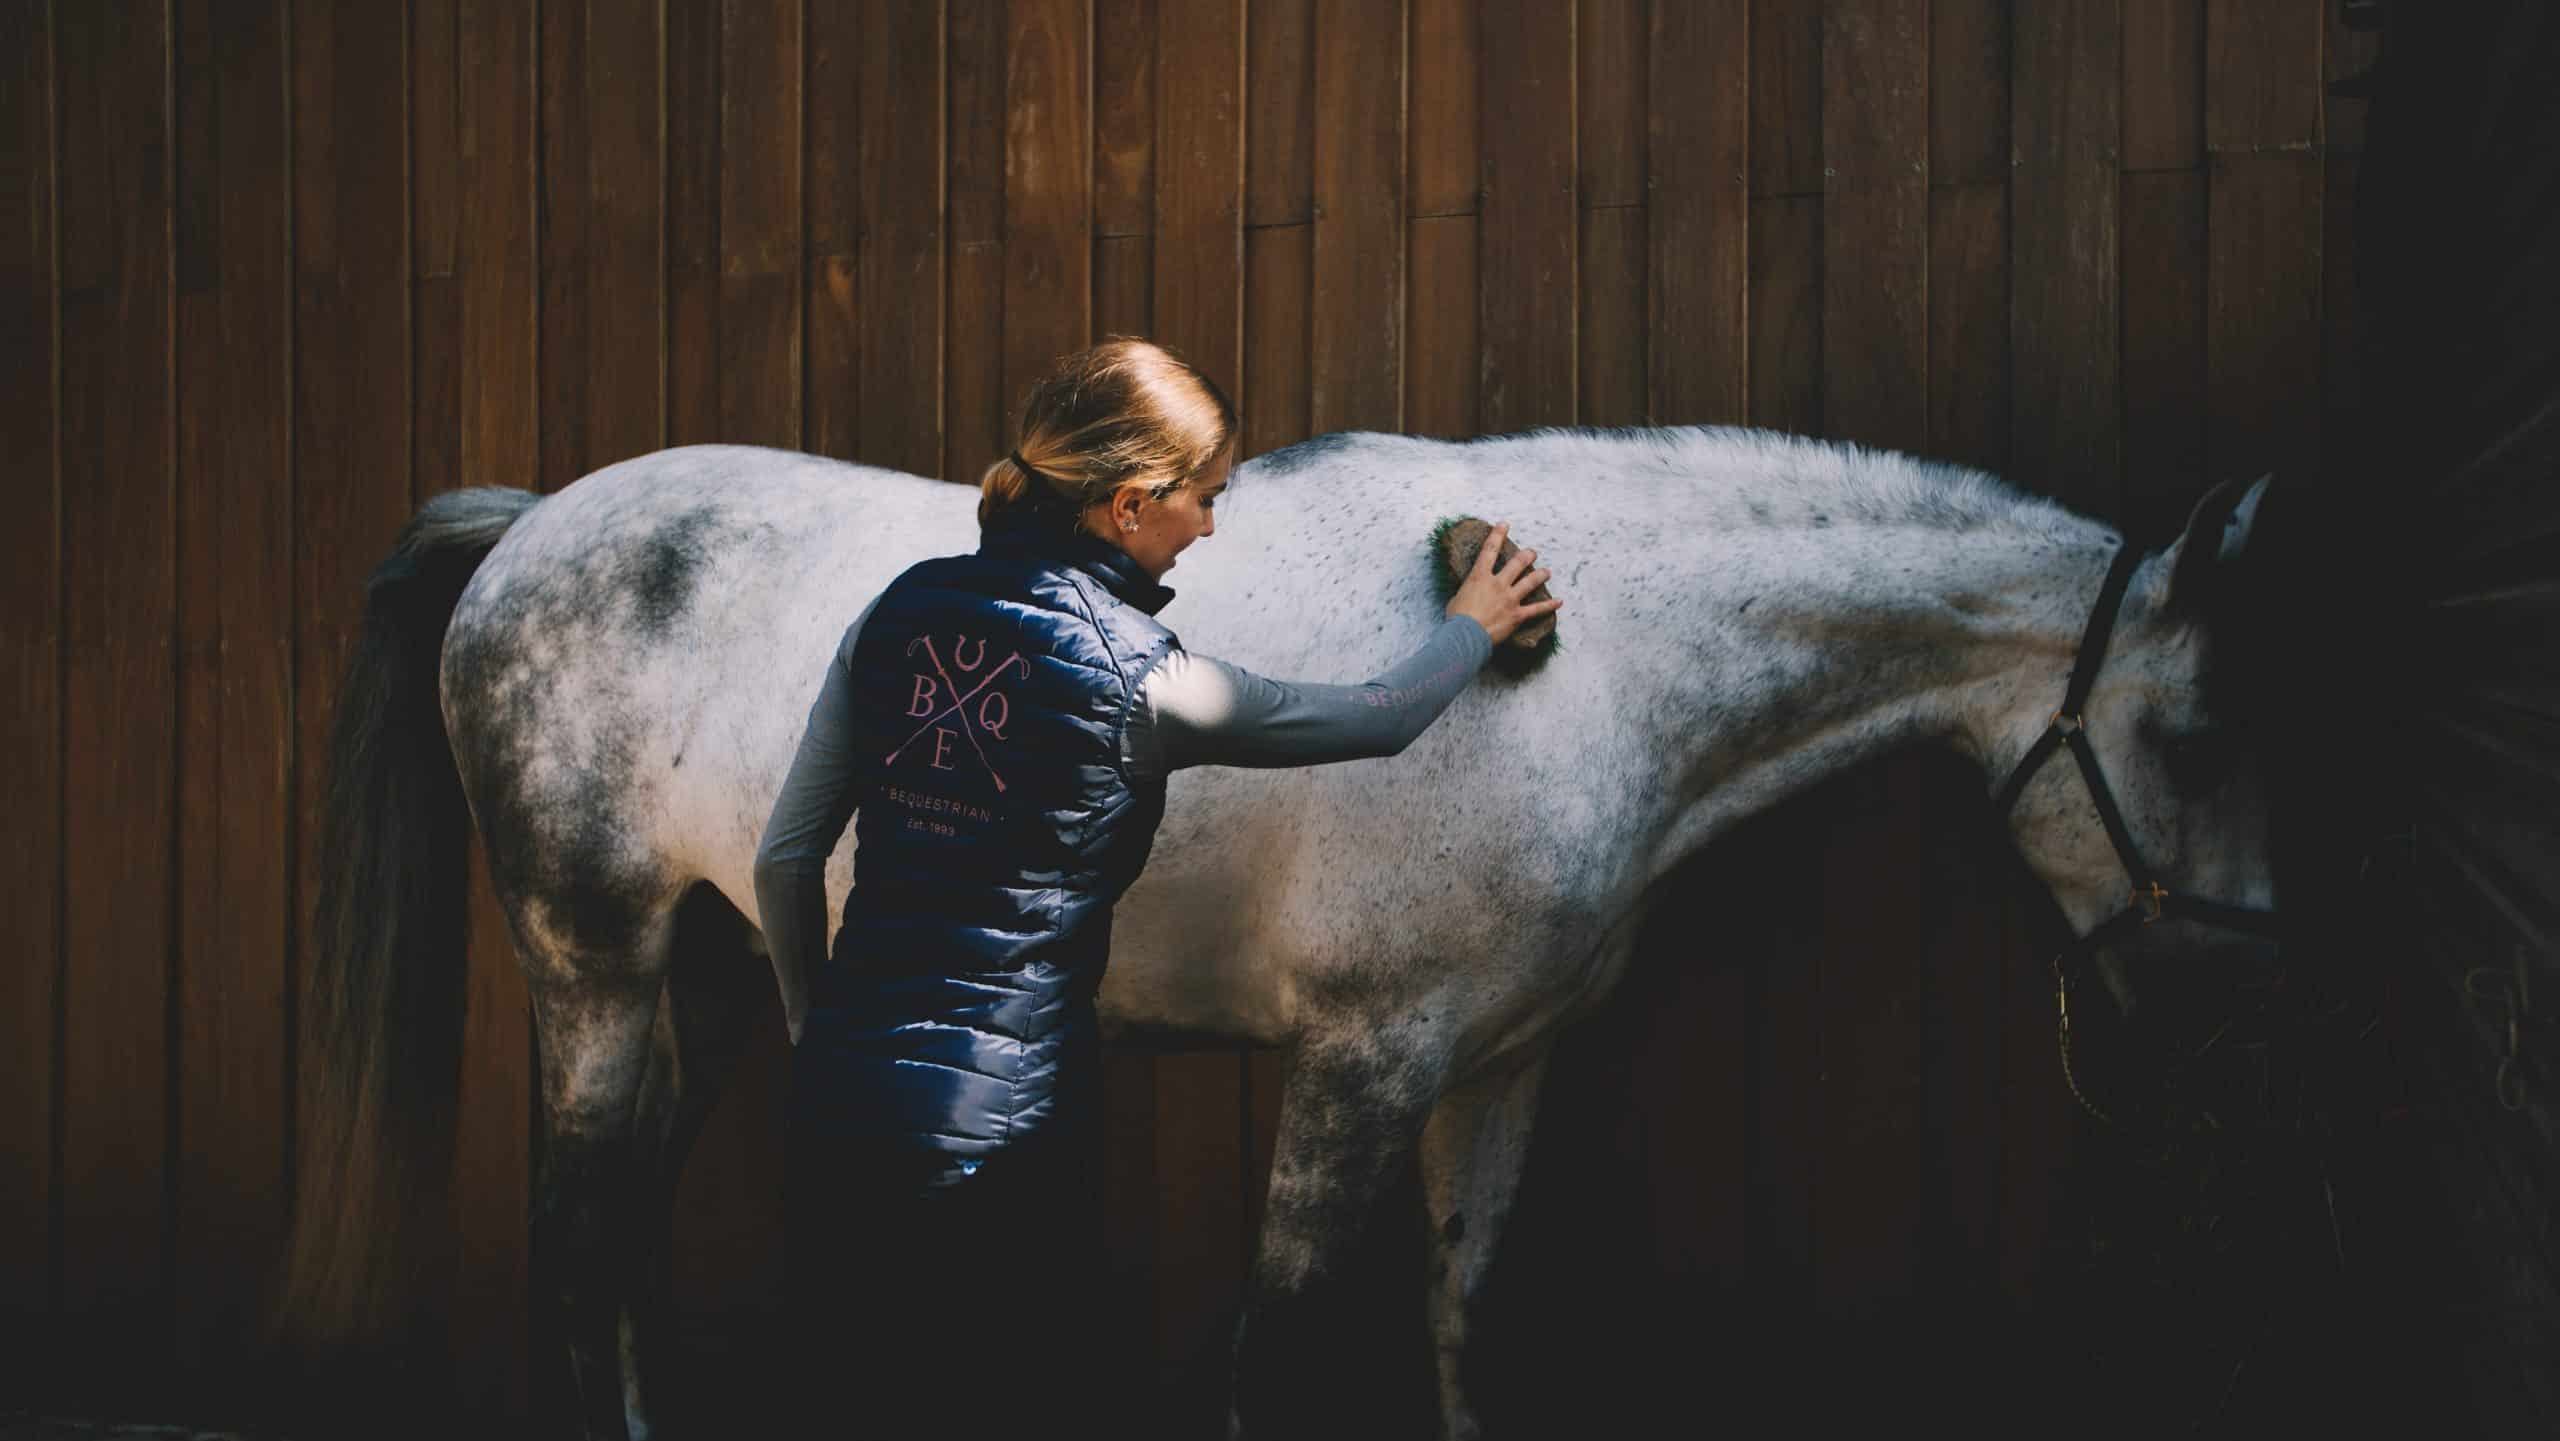 Header Image - Woman Brushes Horse down with equestrian brush